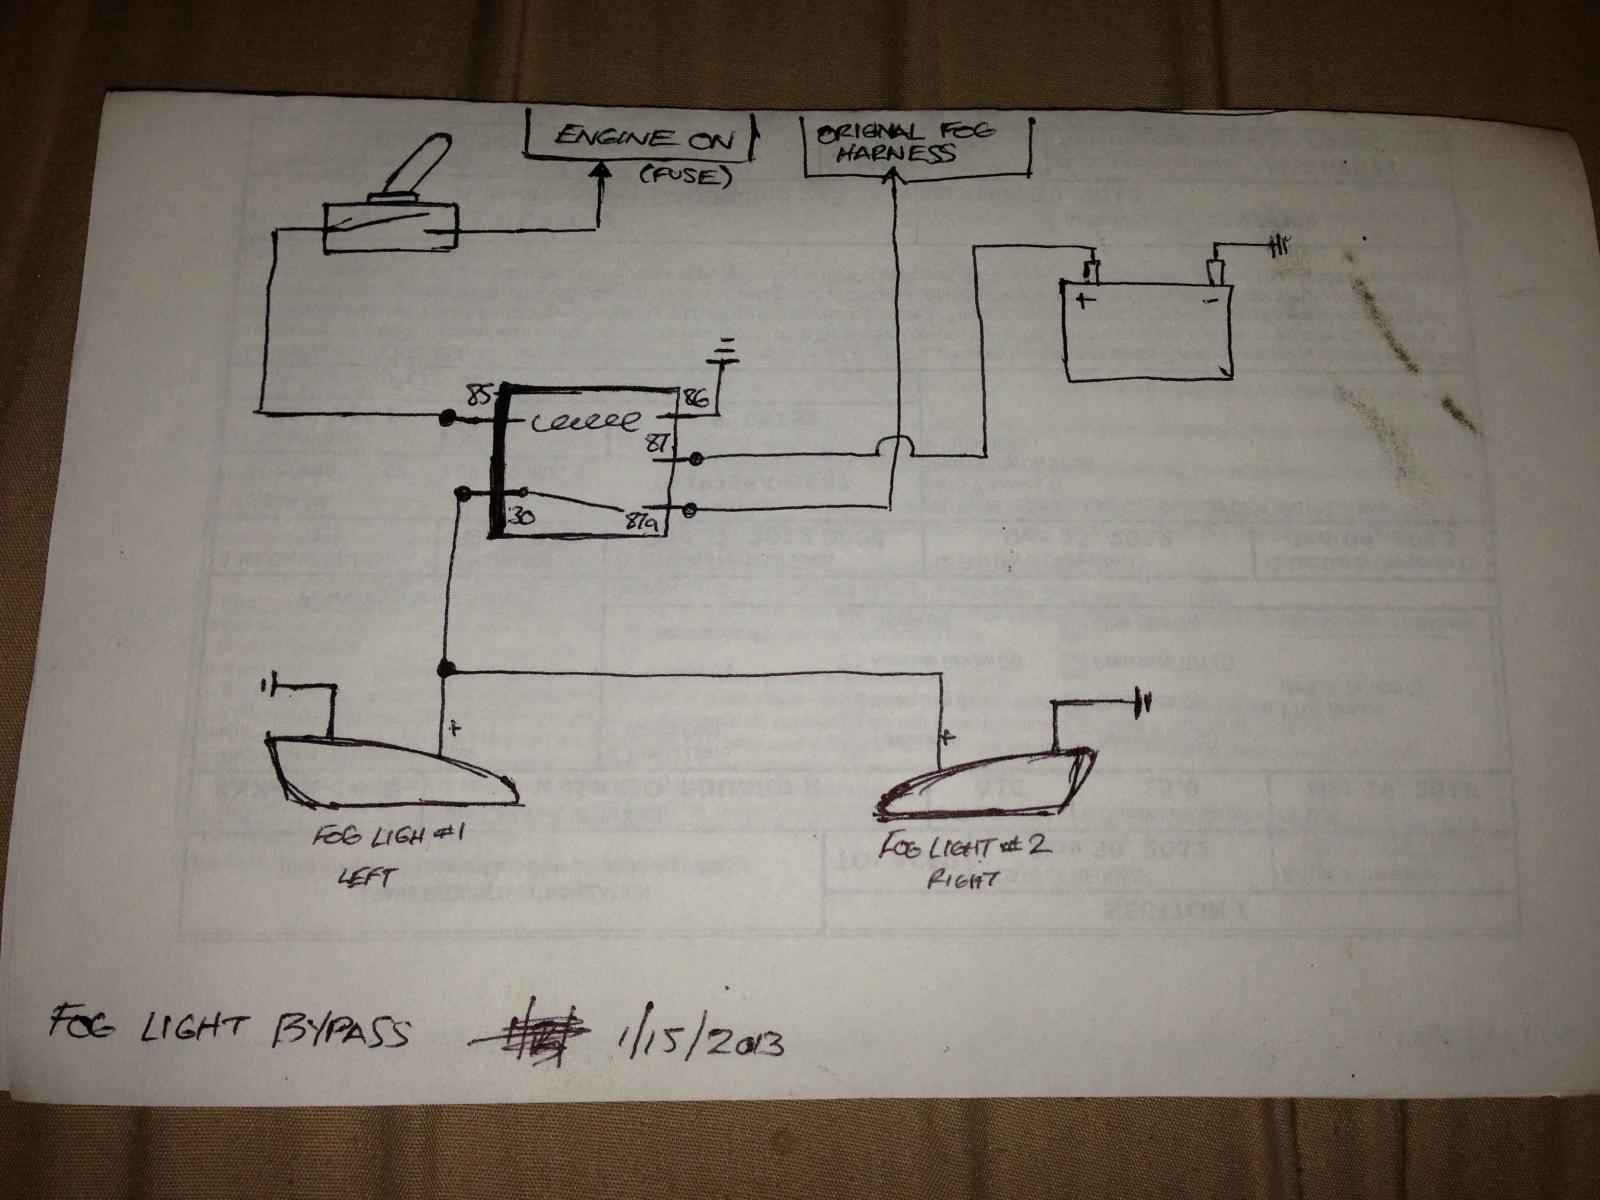 Simple wiring diagram to bypass foglights works wo headlights or w simple wiring diagram to bypass foglights works wo headlights or w highbeams swarovskicordoba Choice Image